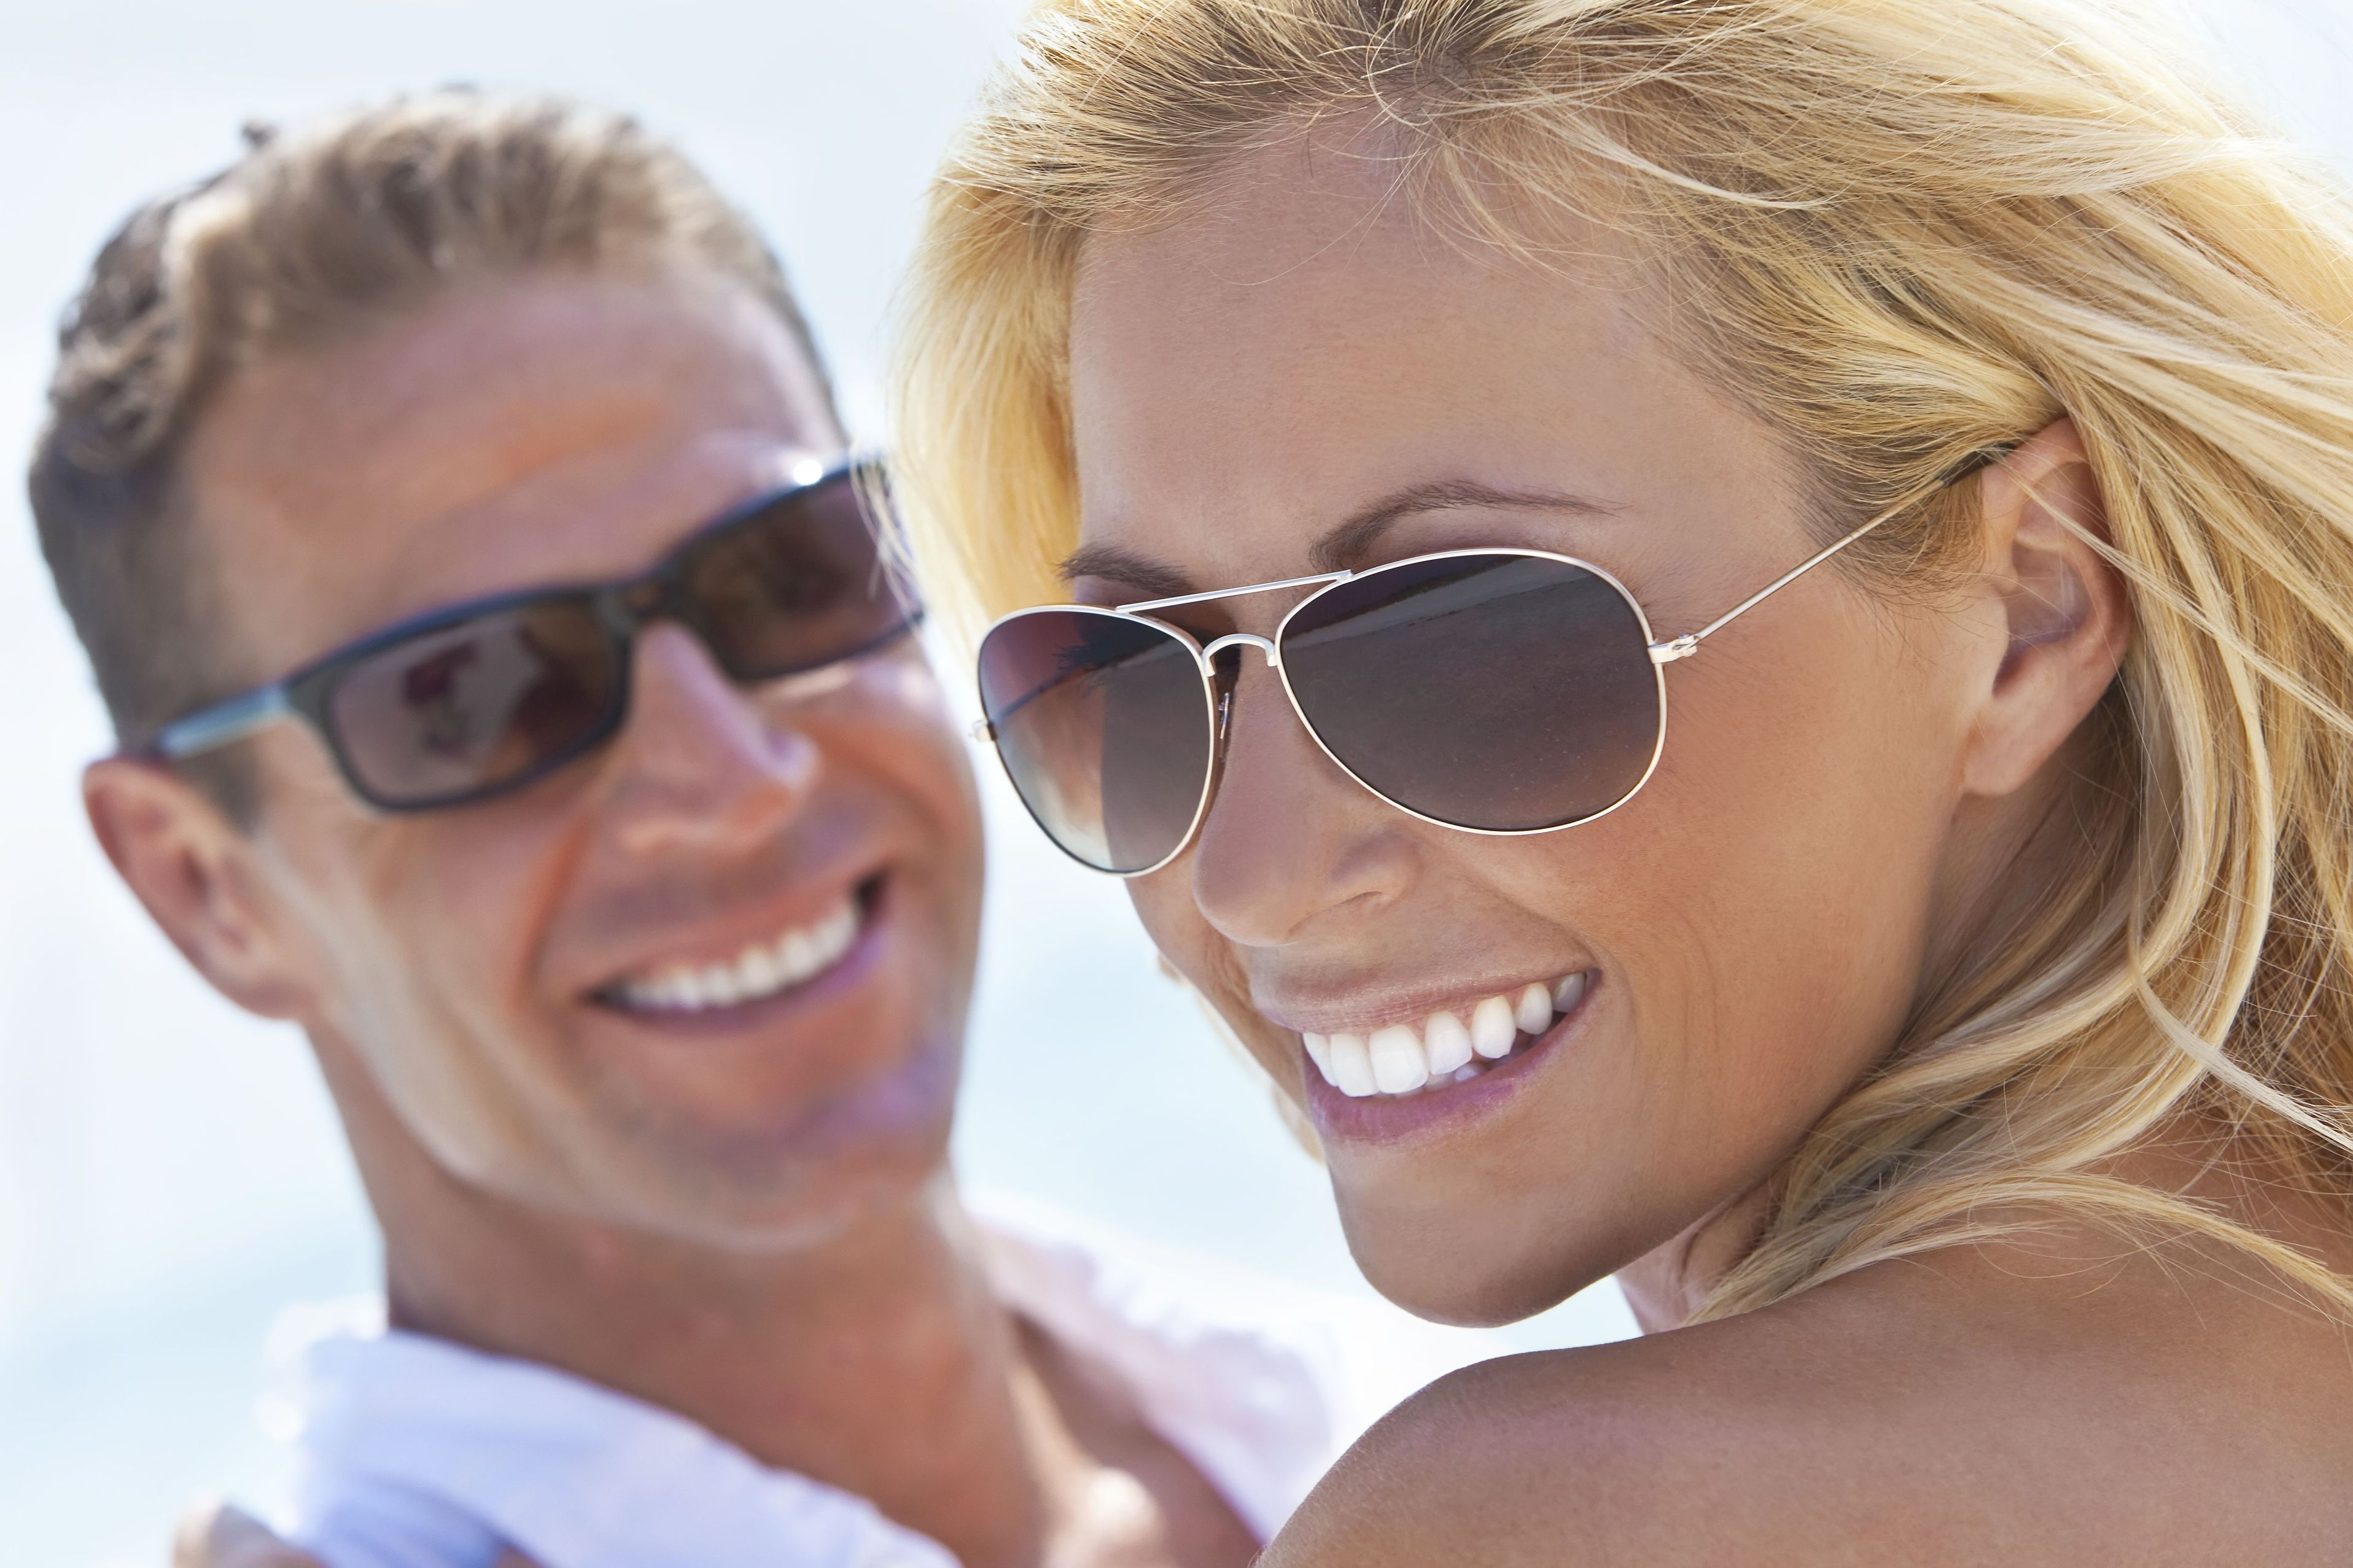 Human Attraction facts